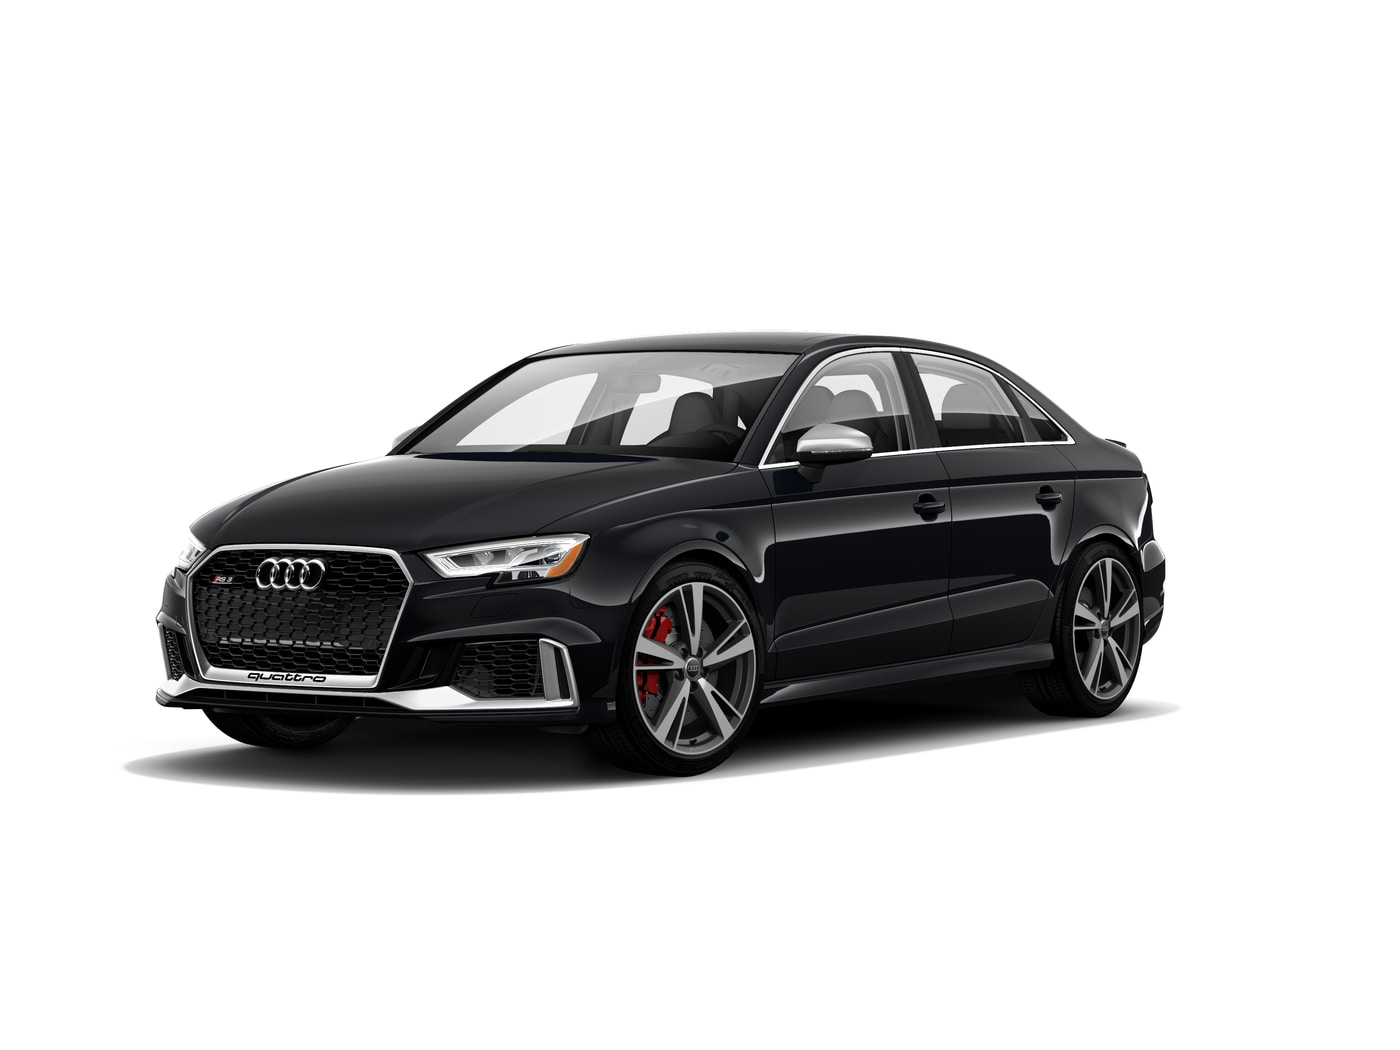 long audi ny cars for queens car sale in connecticut used hicksville dealer island